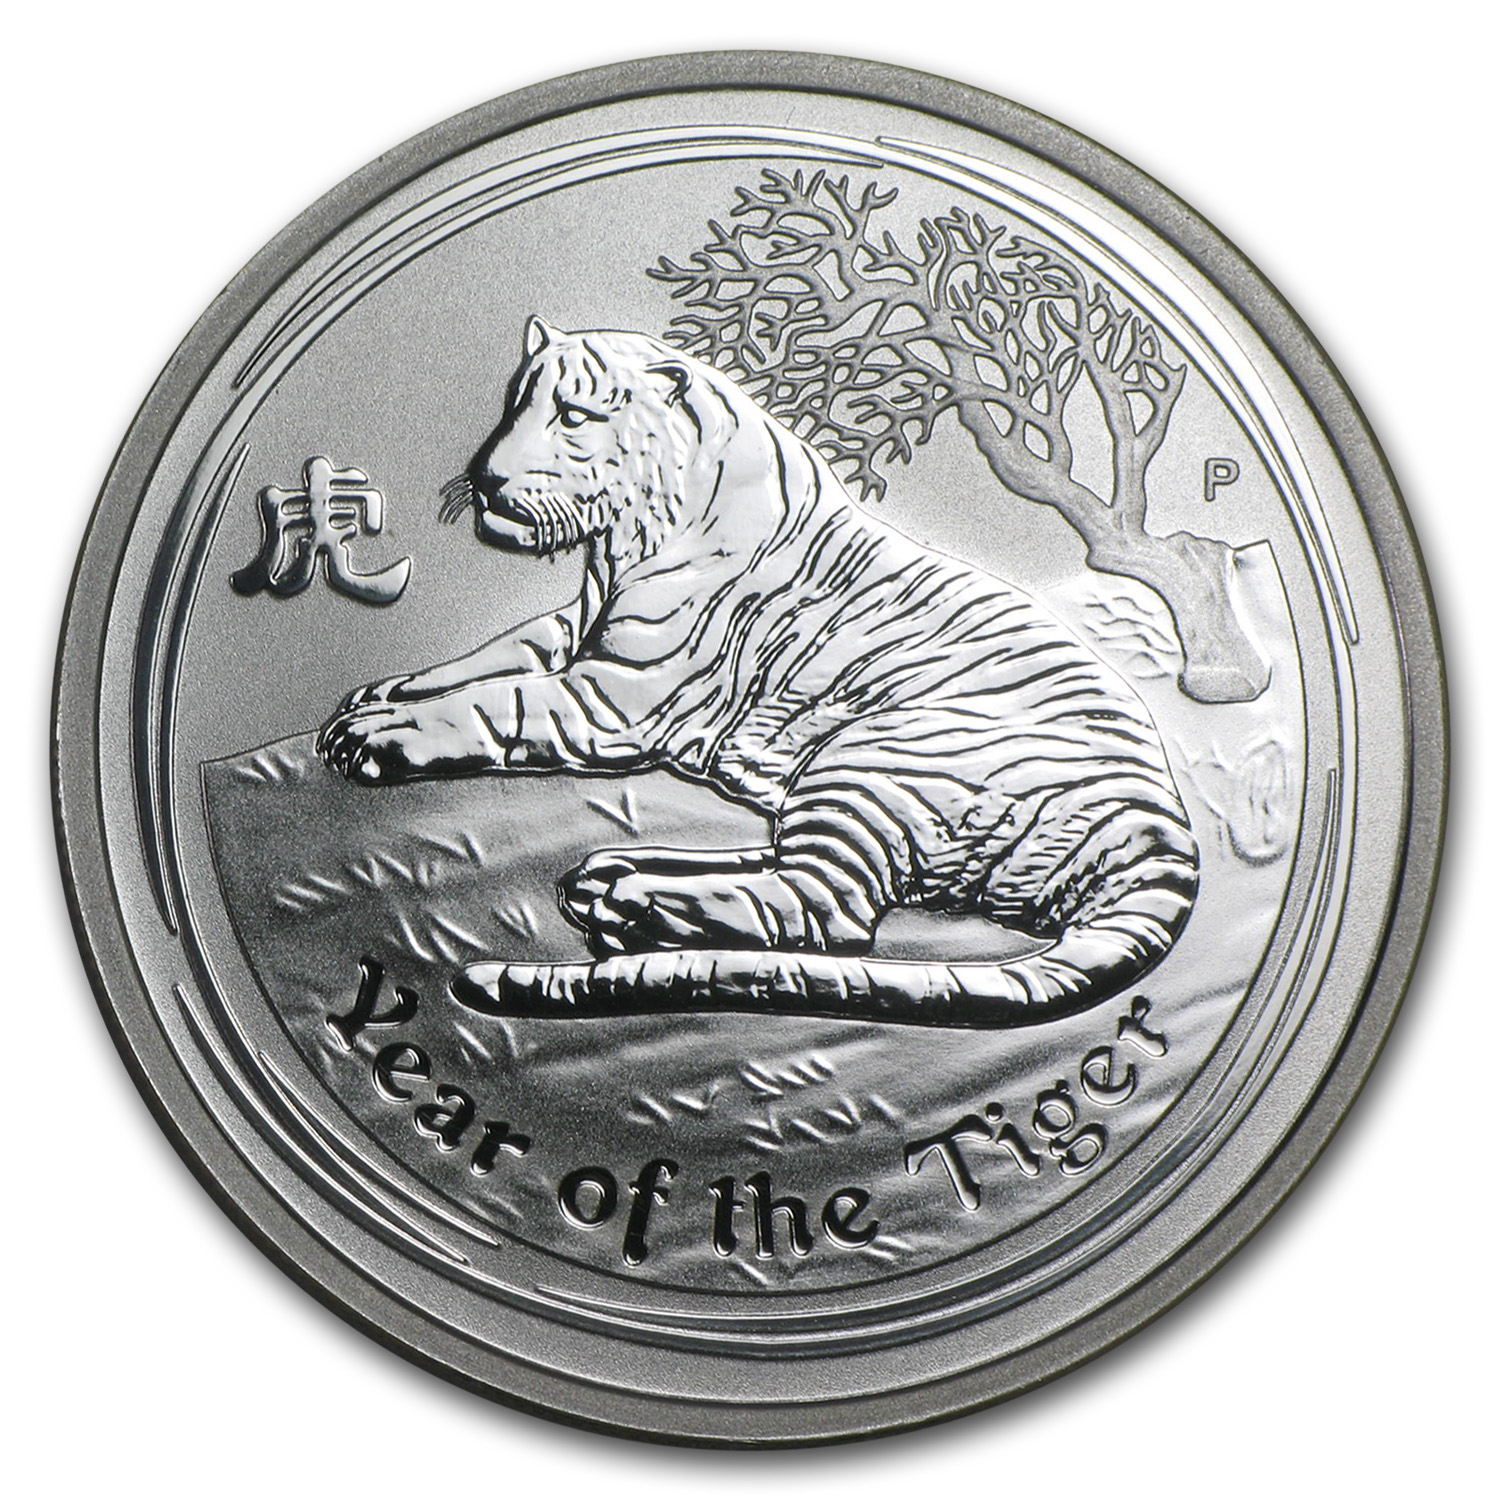 2010 1/2 oz Silver Australian Year of the Tiger Coin (Series II)